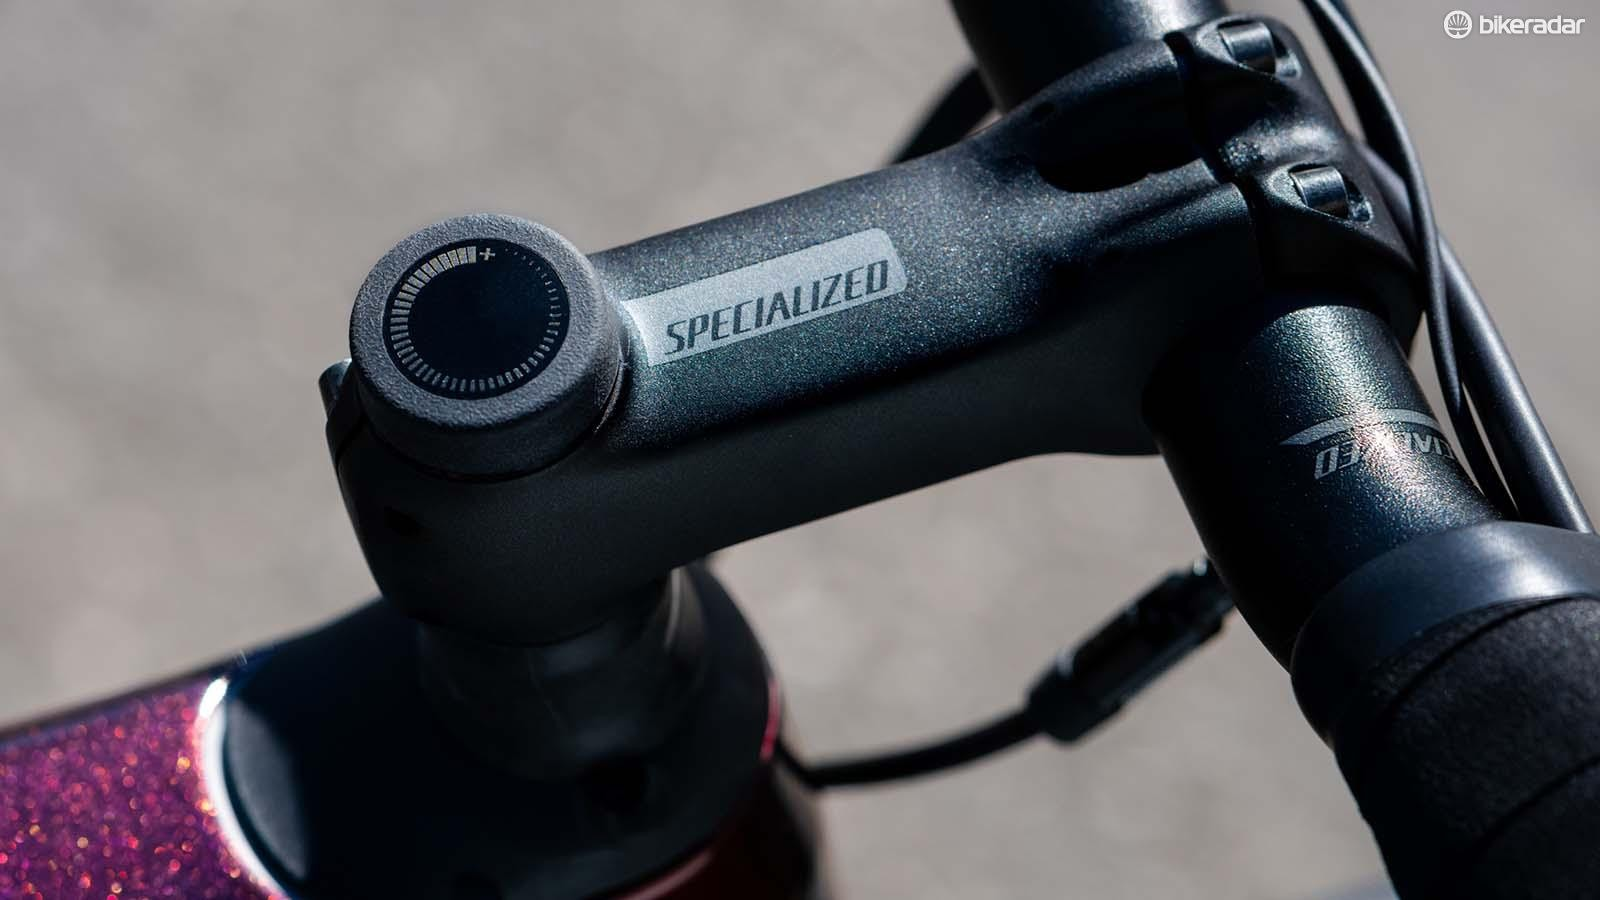 You can tune the cushioning of the Roubaix Pro's Future Shock 2.0 using a stem top adjuster